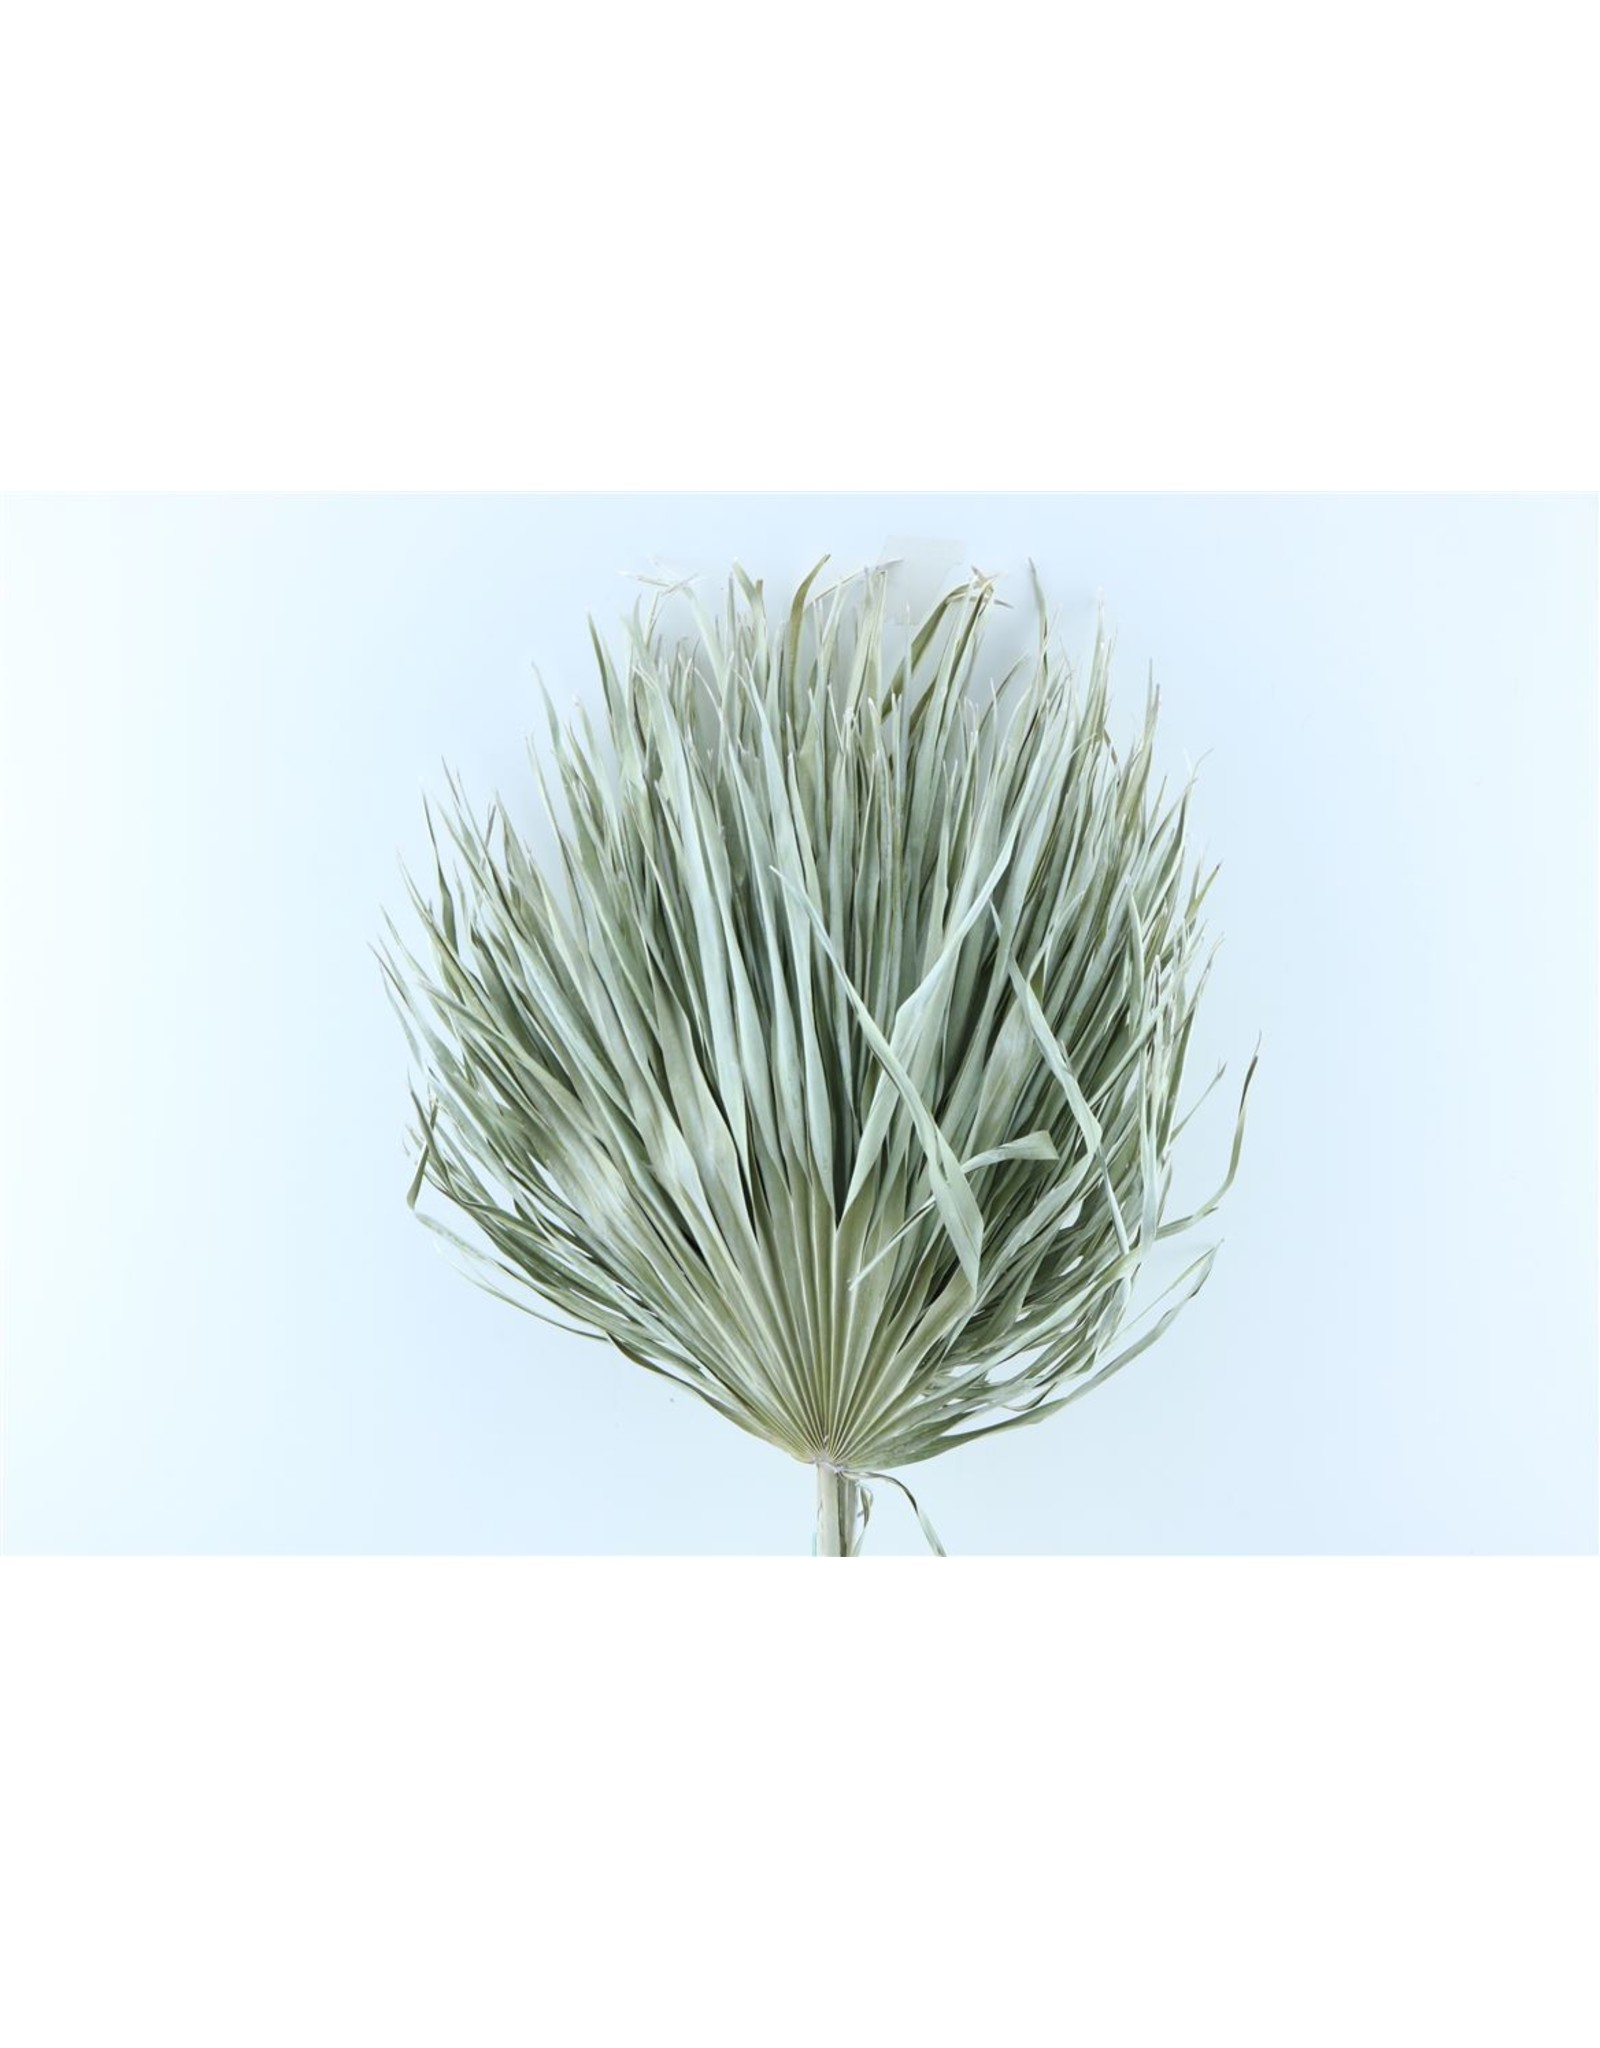 Dried Chamaerops (10tk) Frosted White Bunch x 1